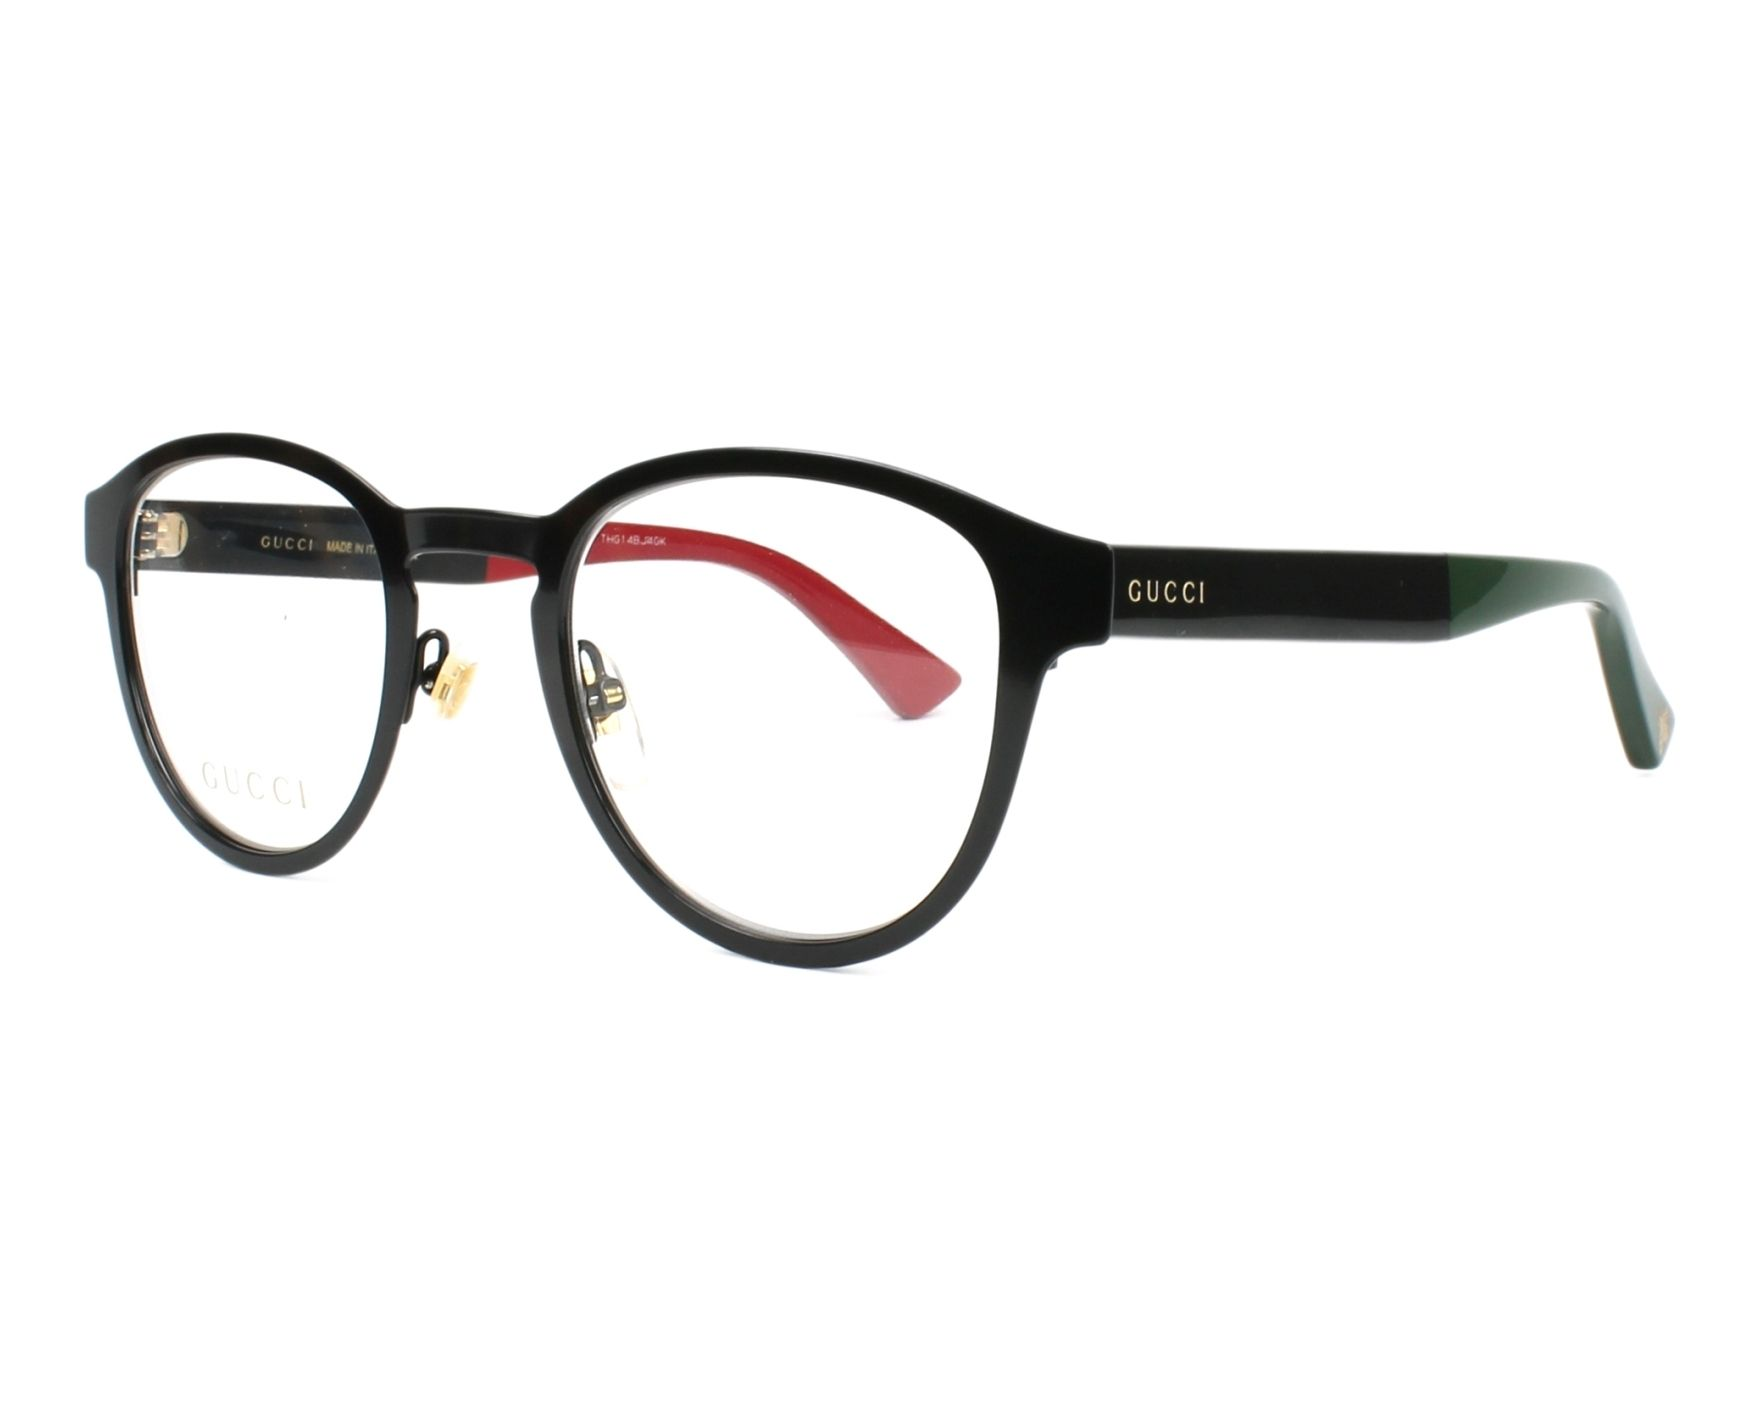 a3ebcd91491 eyeglasses Gucci GG-0161-O 002 48-23 Black Red profile view